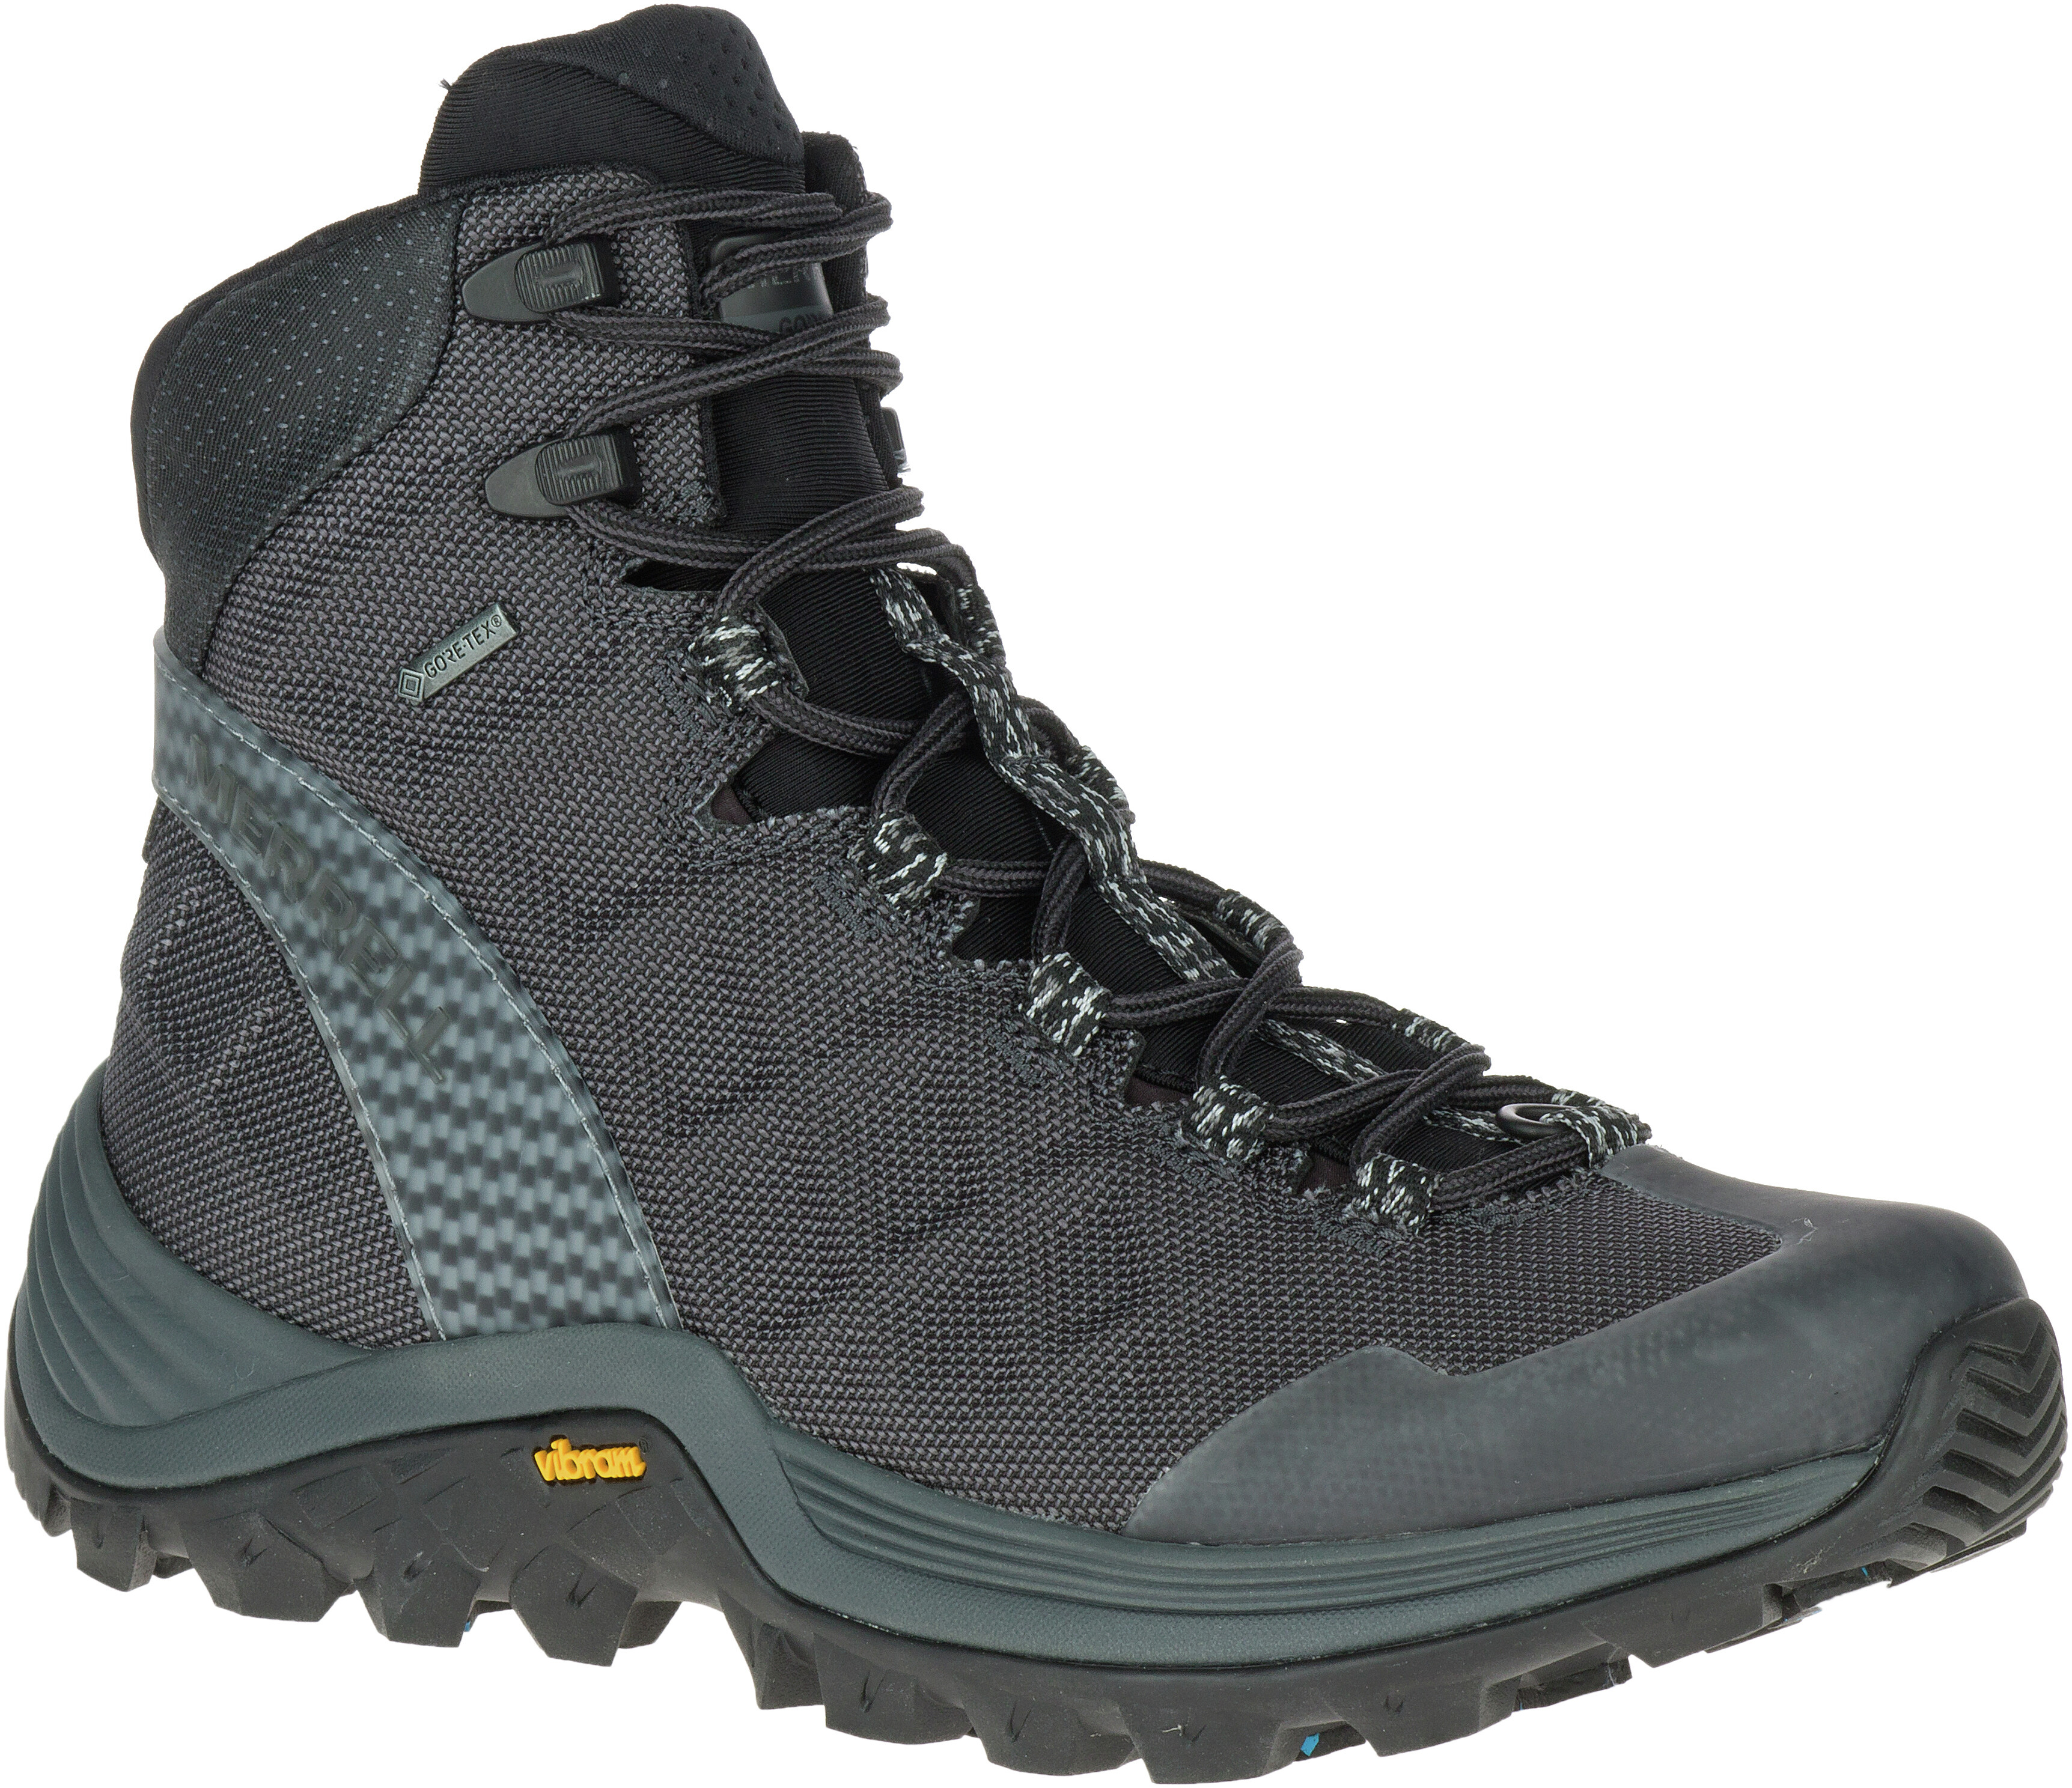 026549f34db Merrell Thermo Rogue Mid GTX Shoes Women black